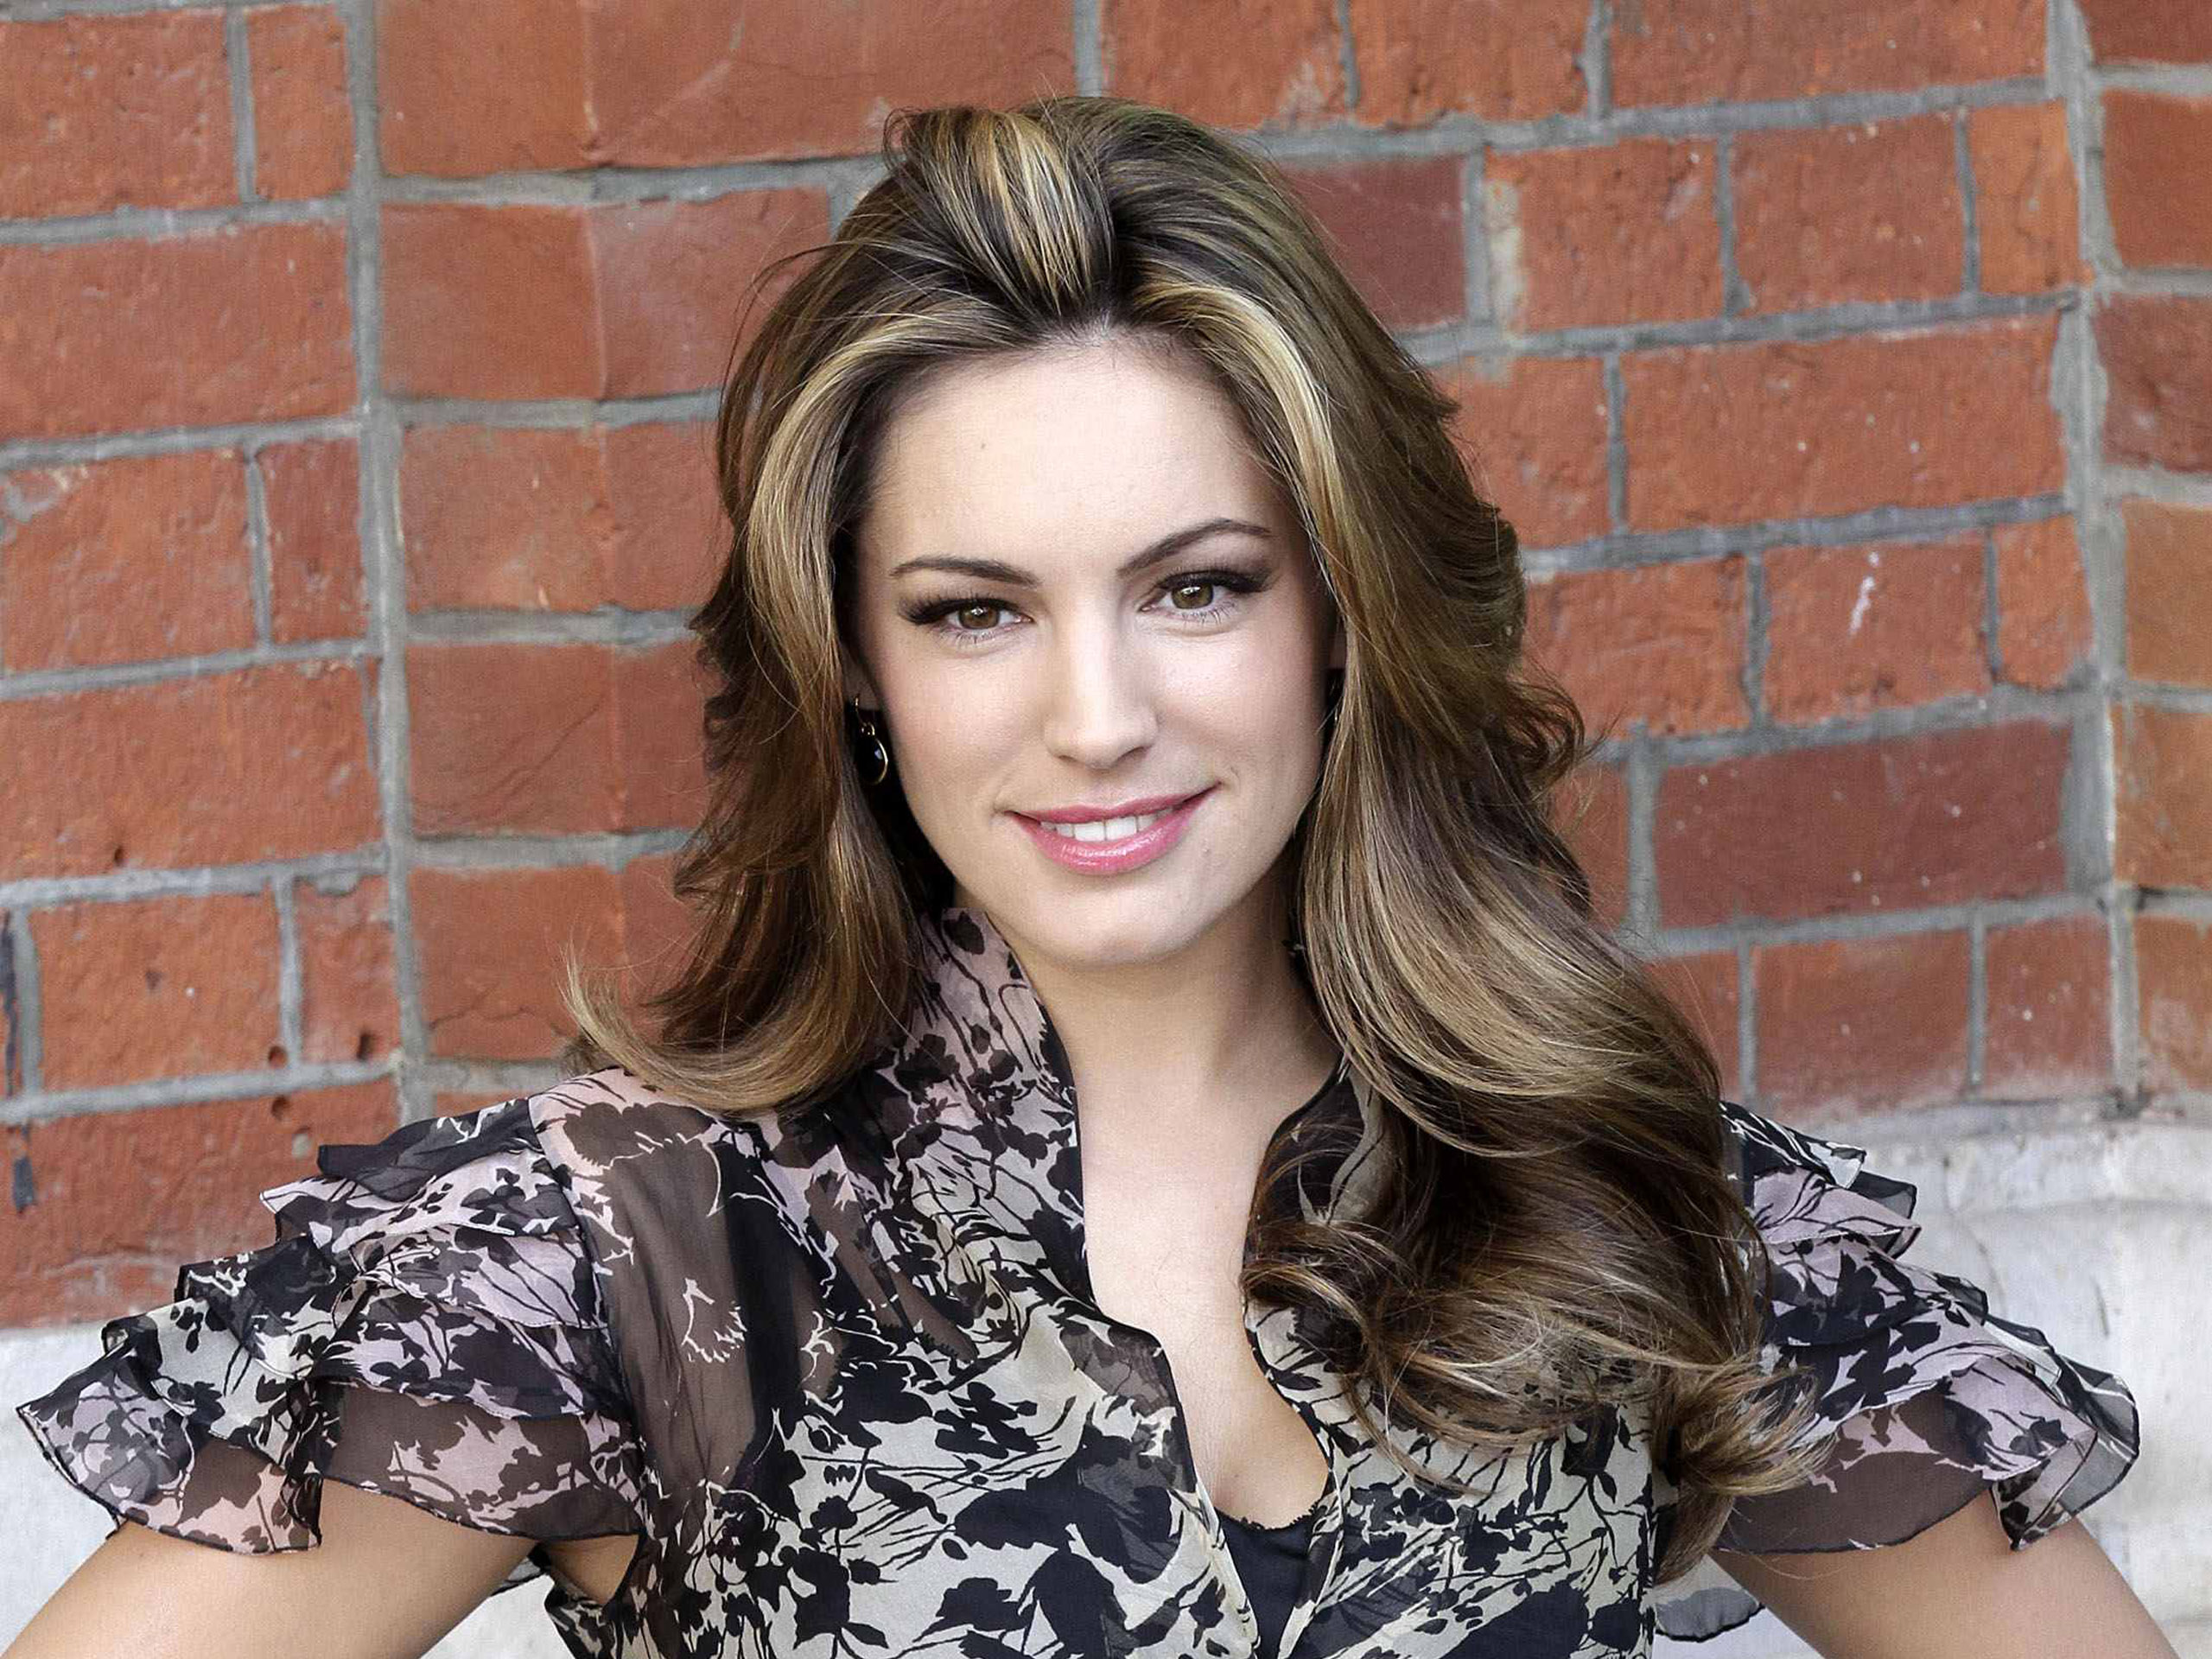 charming widescreen kelly brook themes